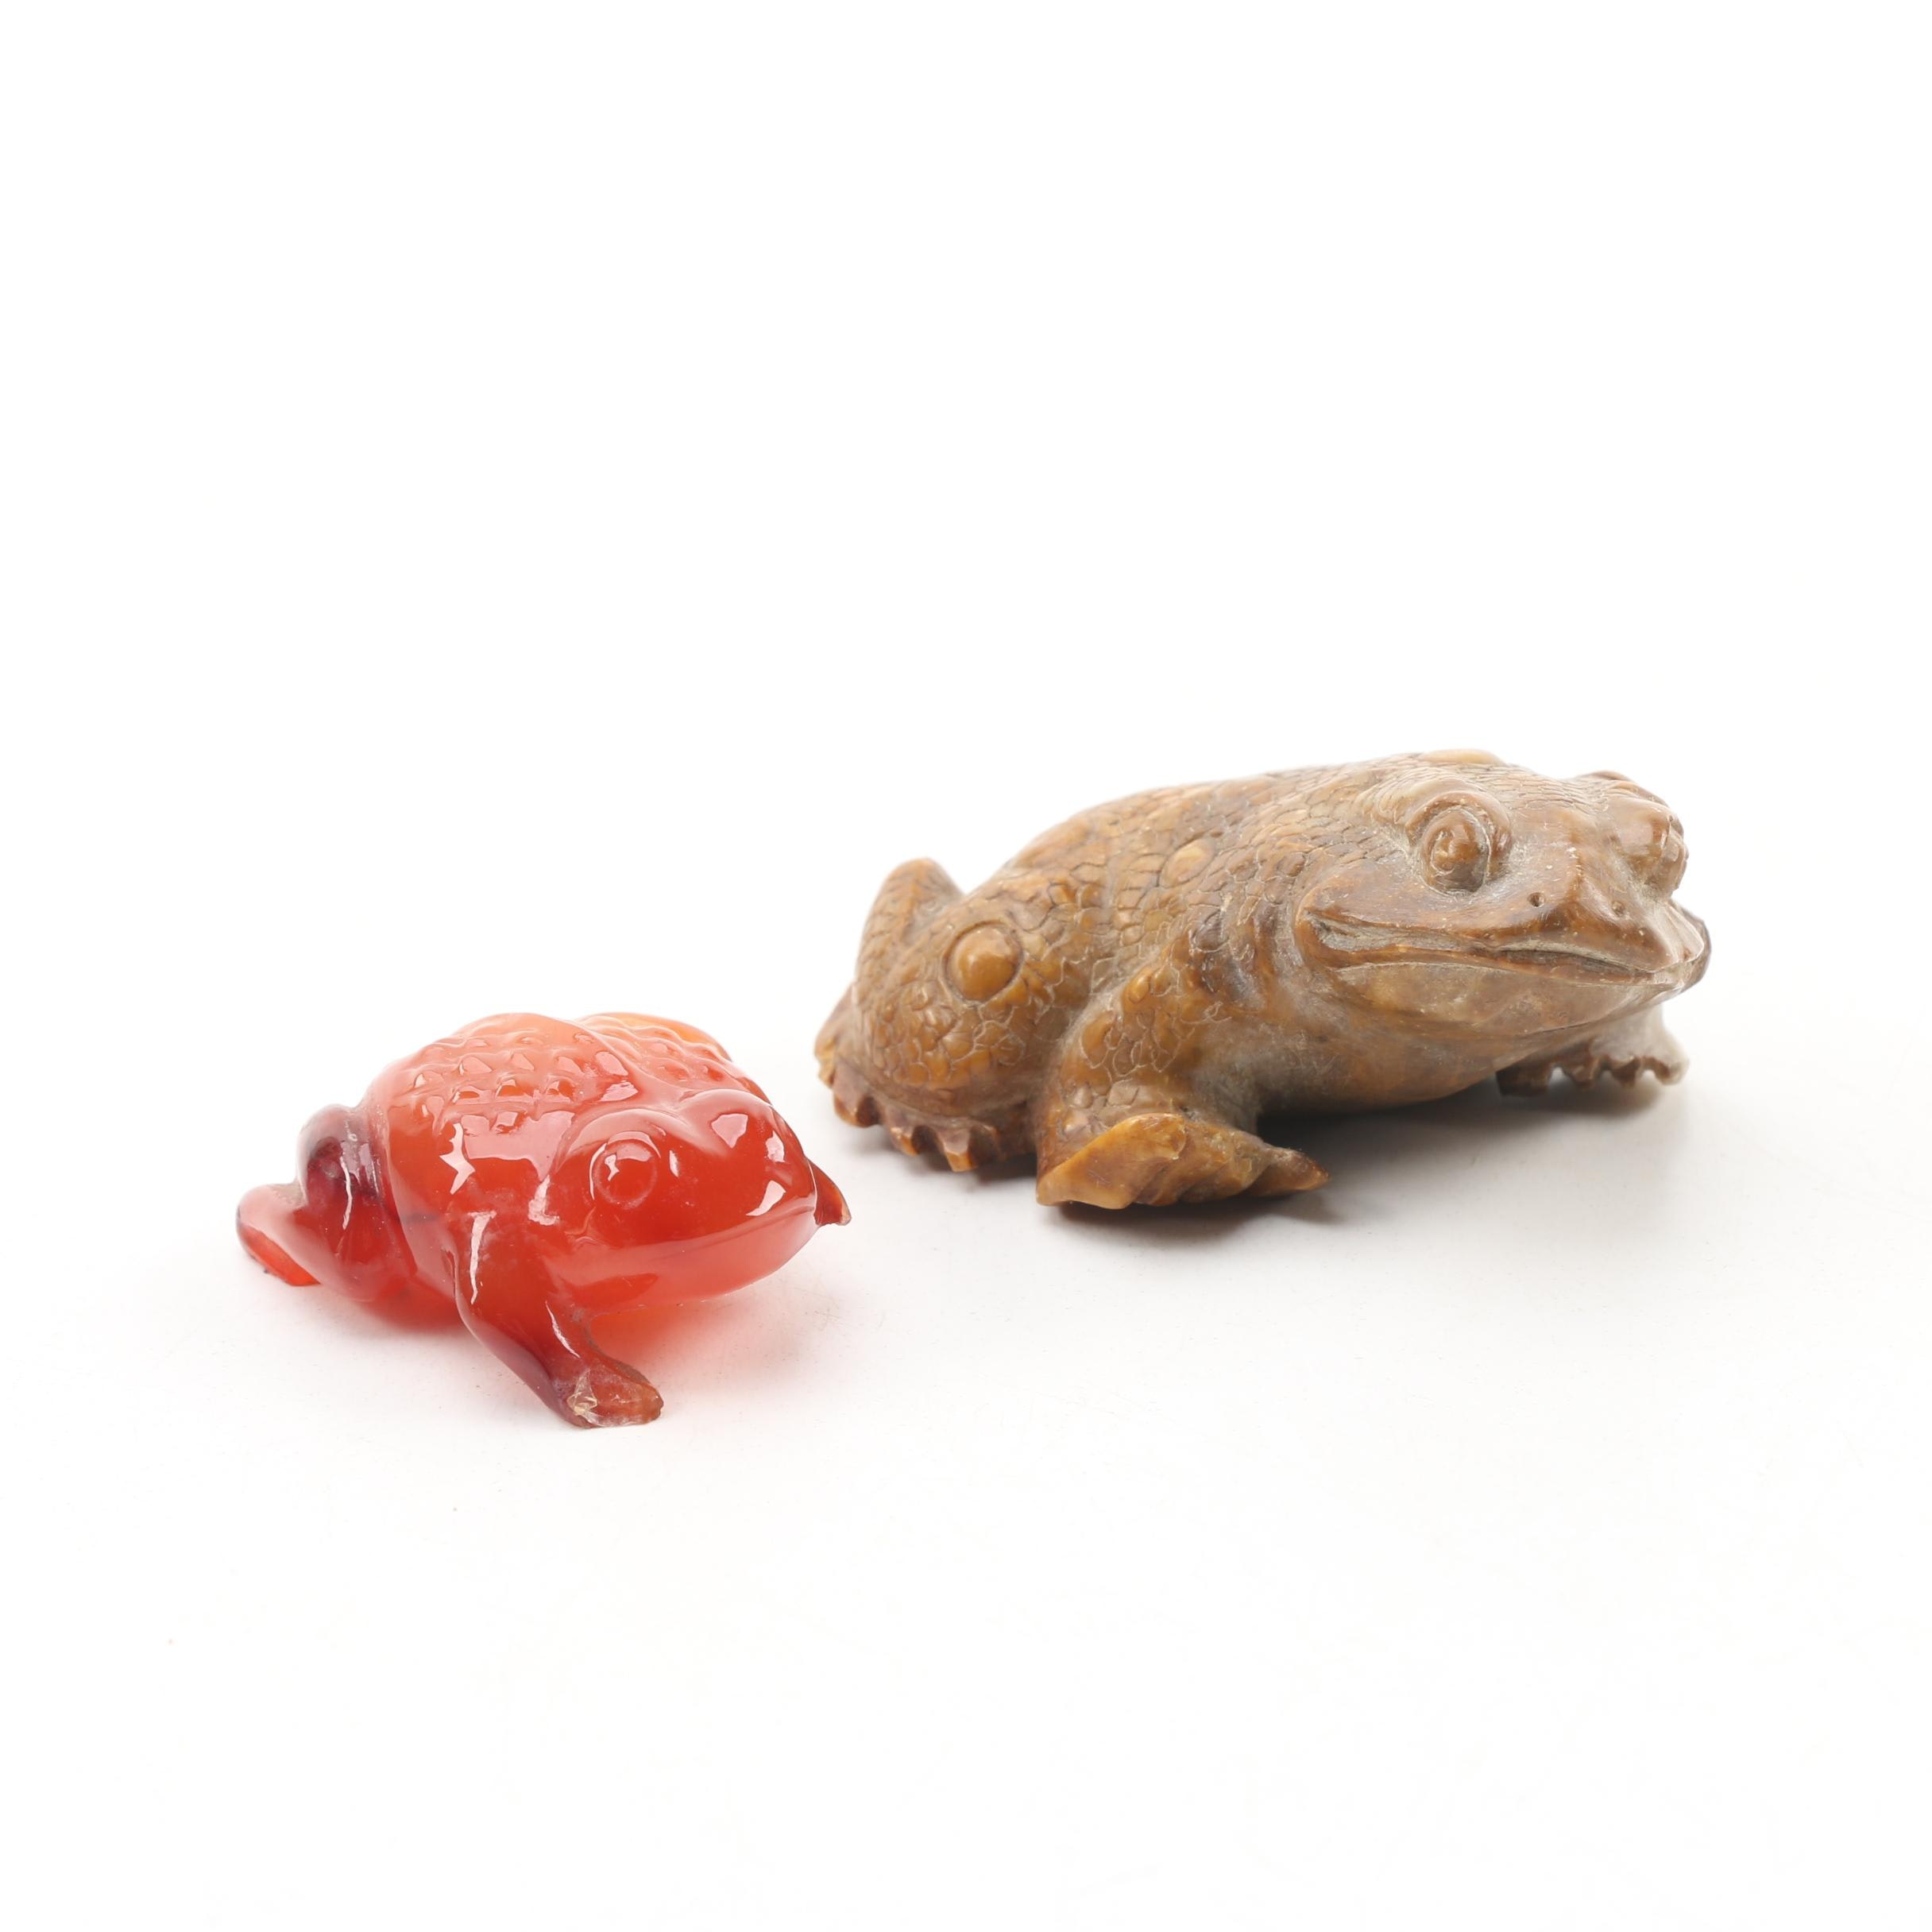 Chinese Carved Soapstone and Carnelian Agate Toads, Early 20th Century